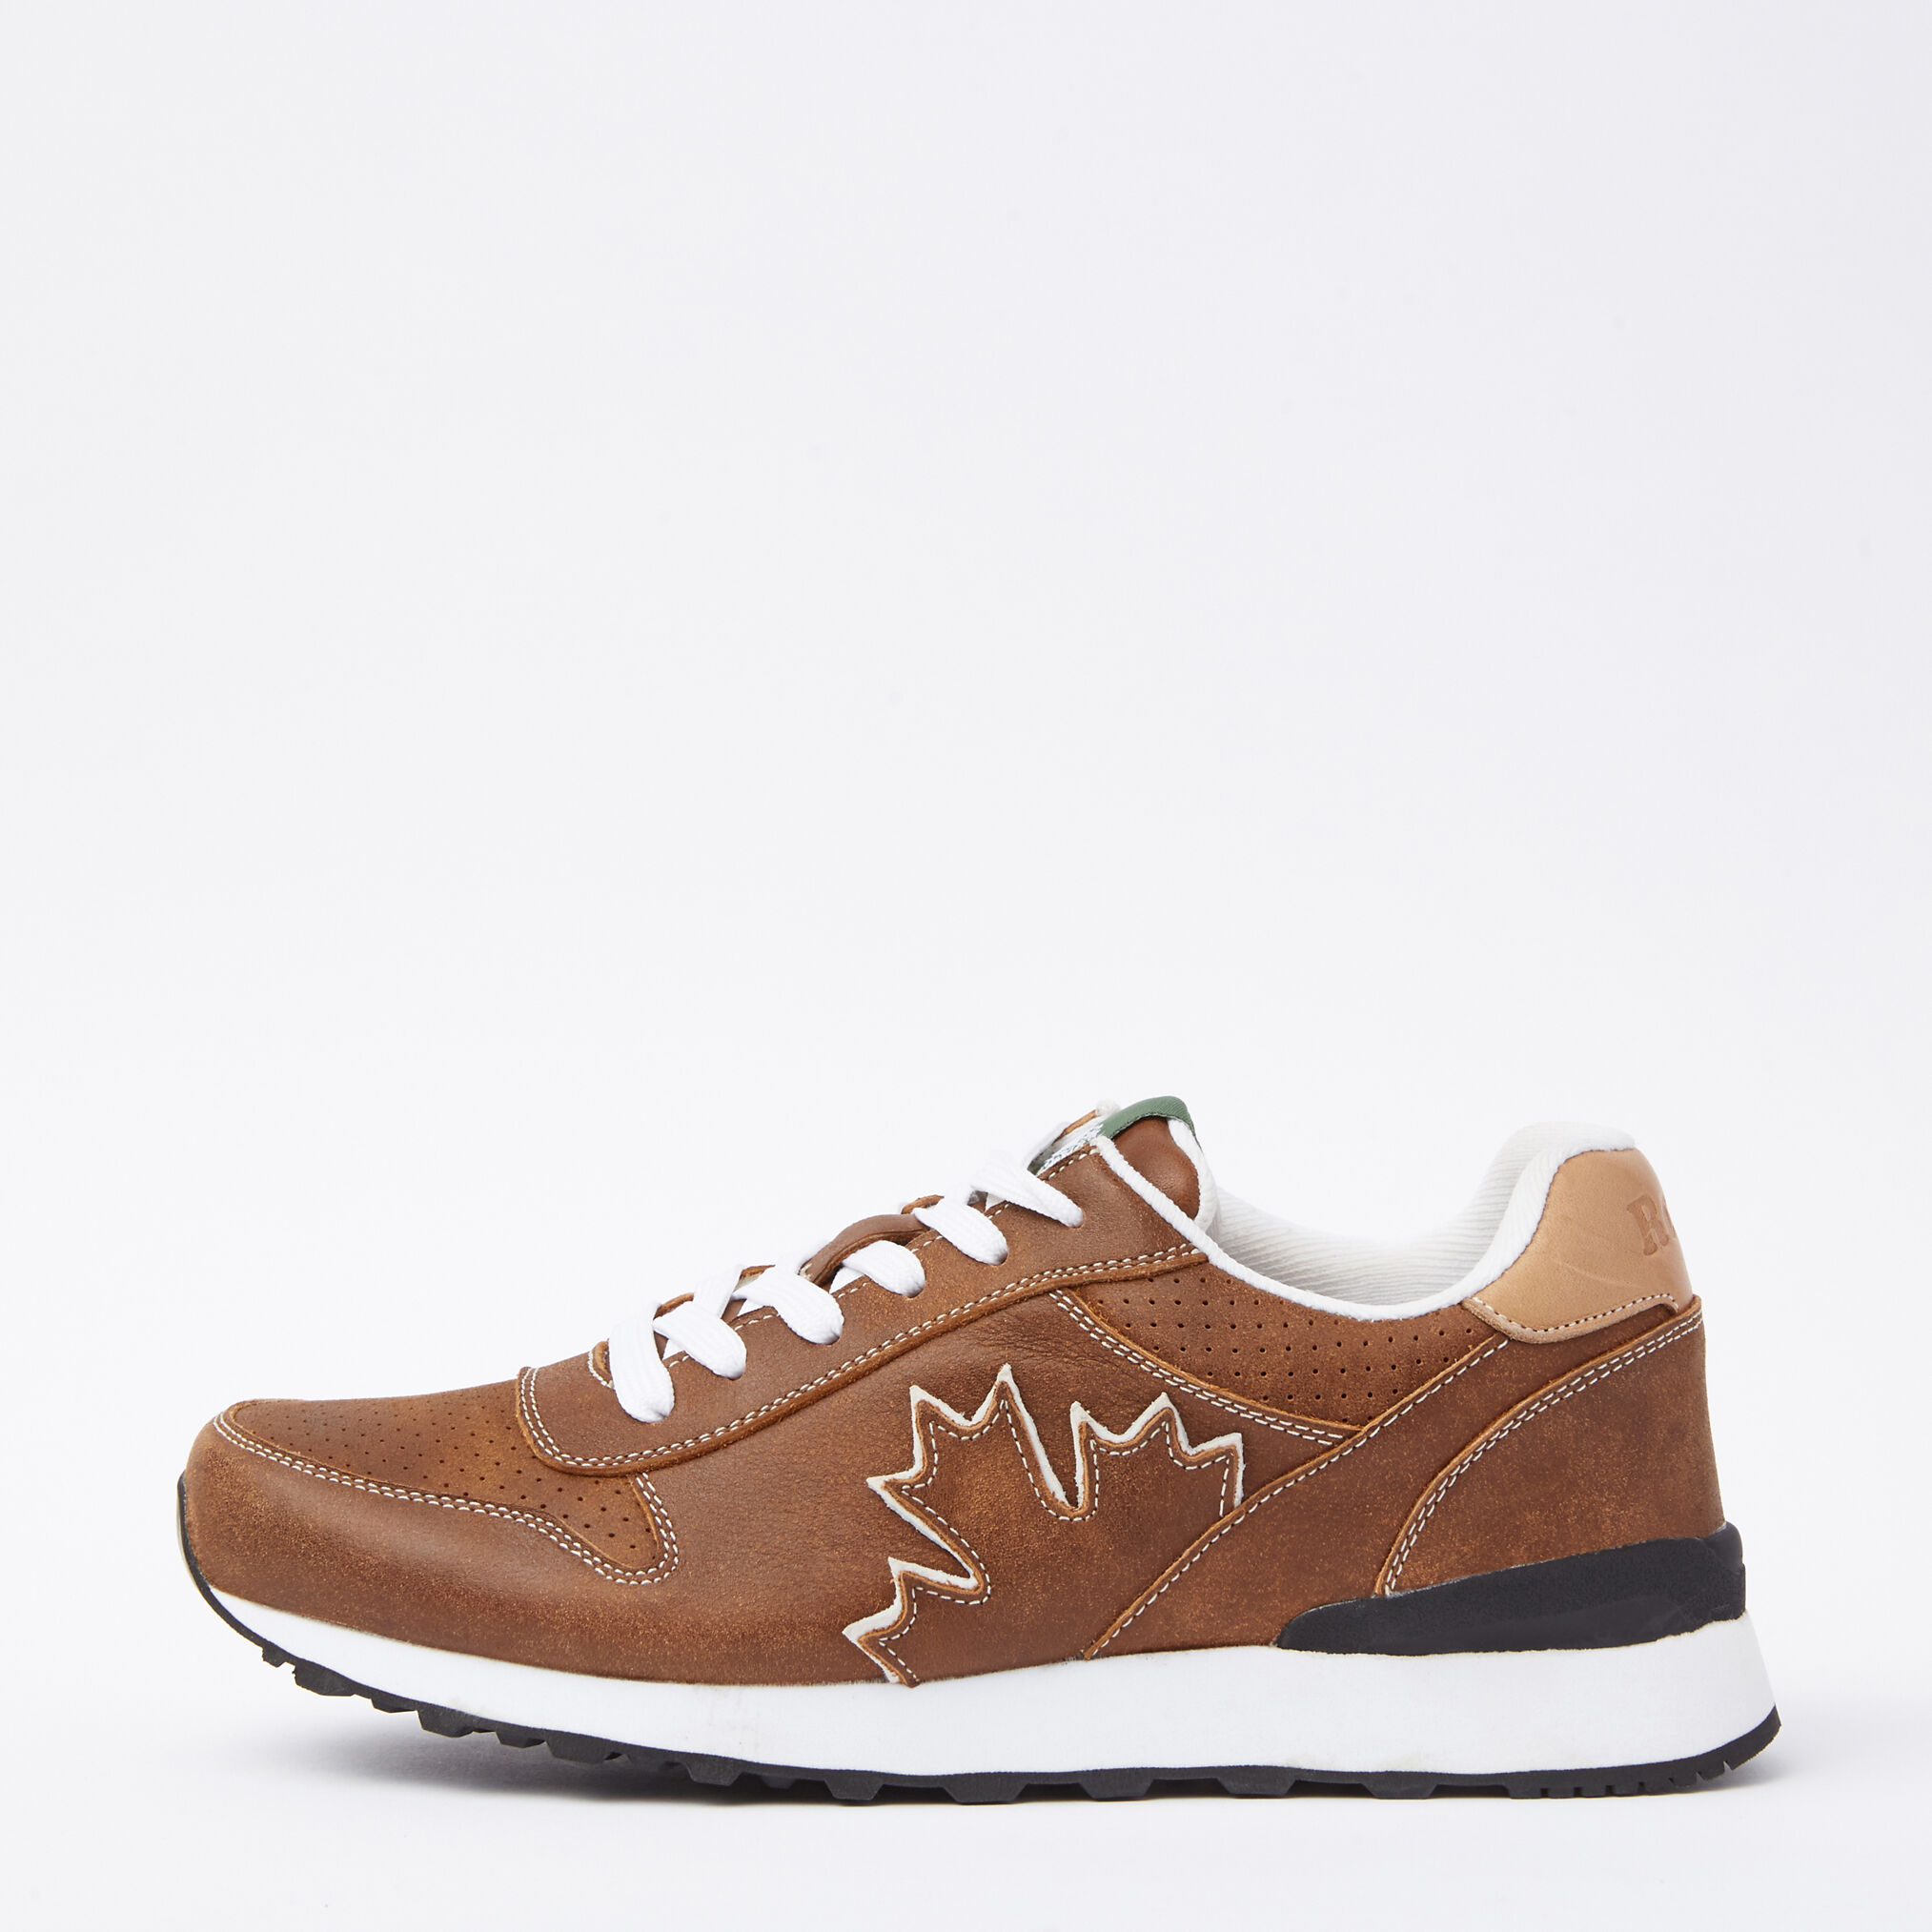 Mens Trans Canada Jogger Tribe Men Shoes Roots